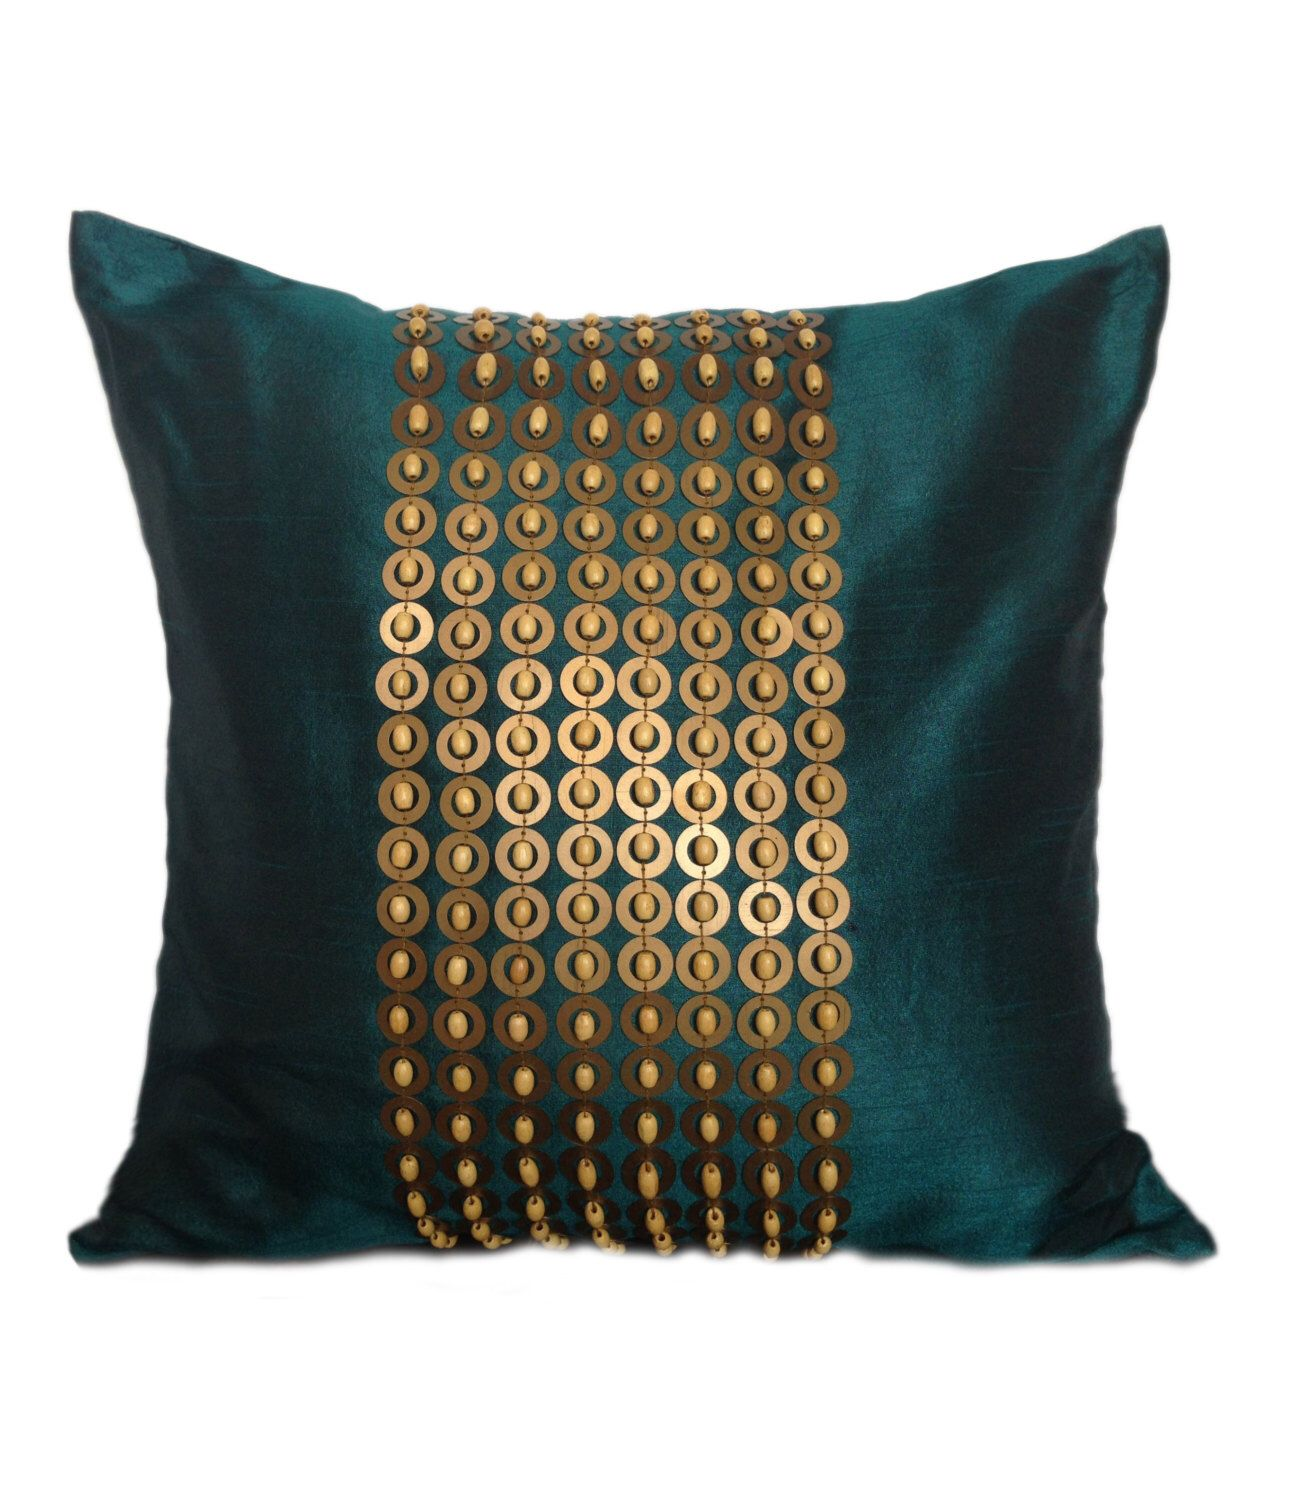 Teal throw pillow with gold sequin and wood beads embroidery x